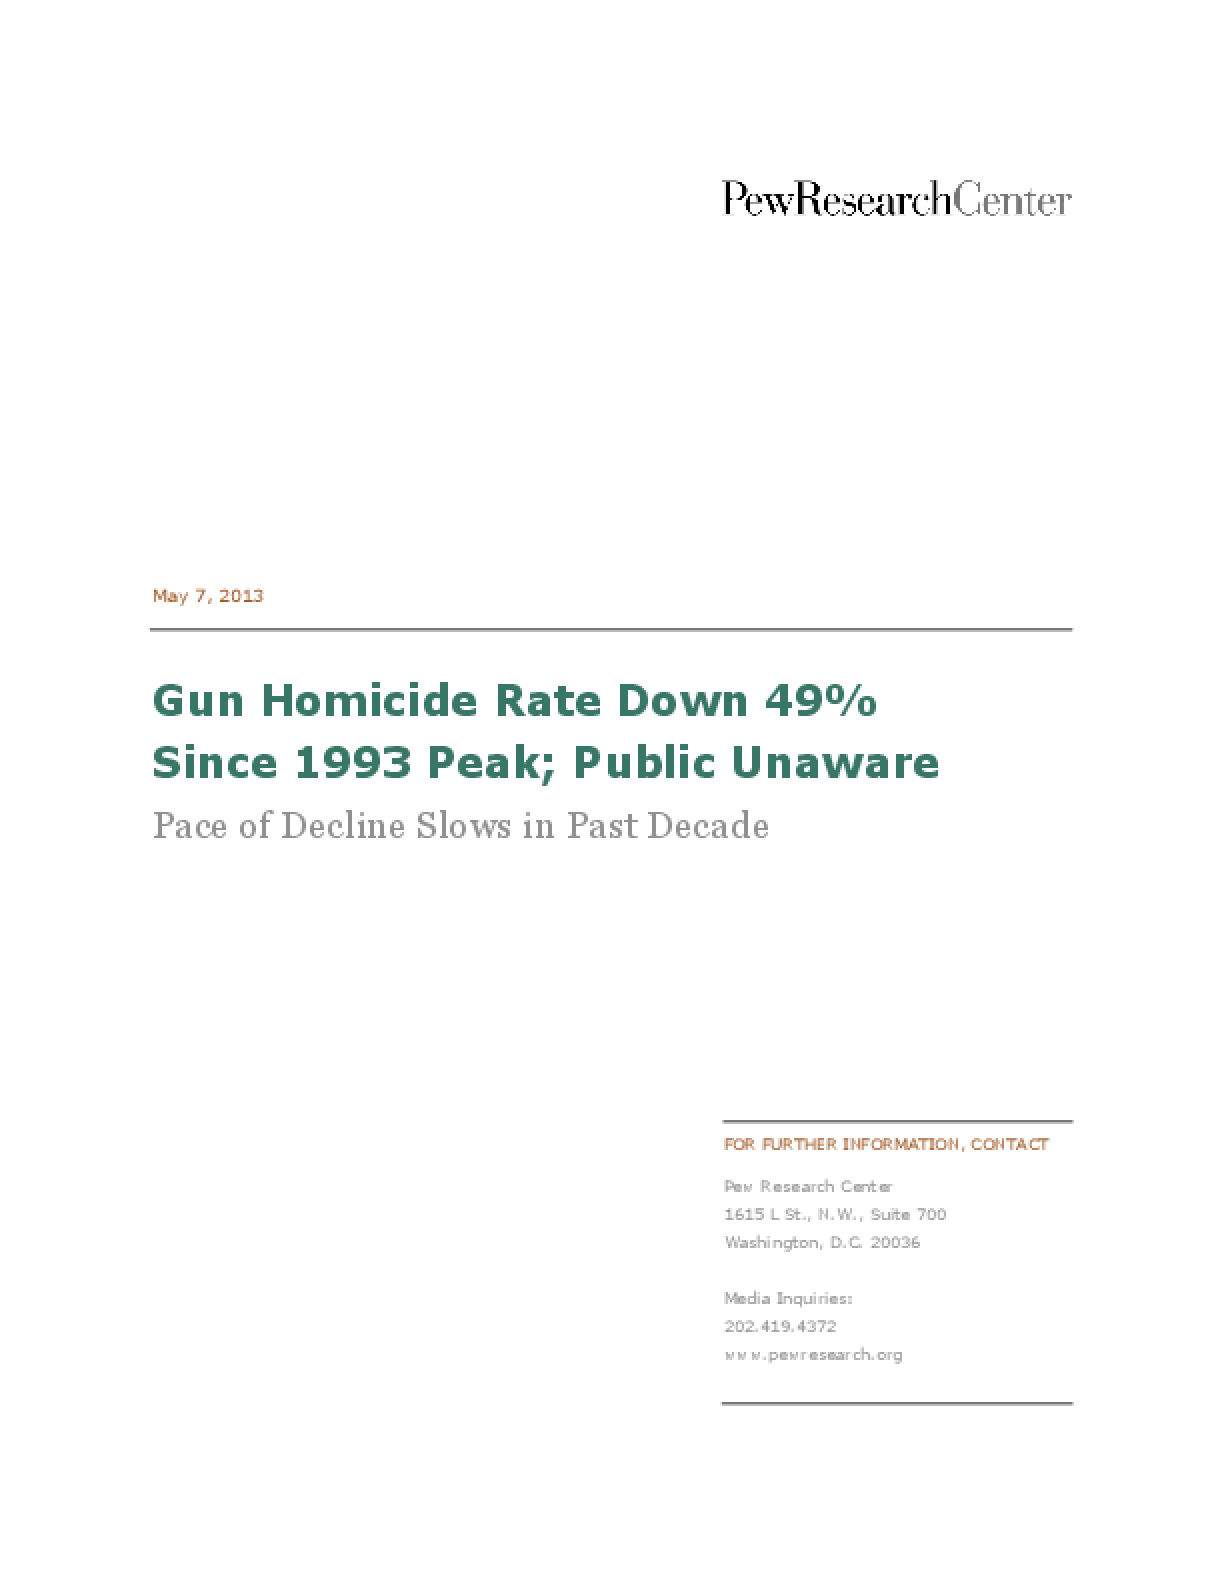 Gun Homicide Rate Down 49% Since 1993 Peak - Public Unaware